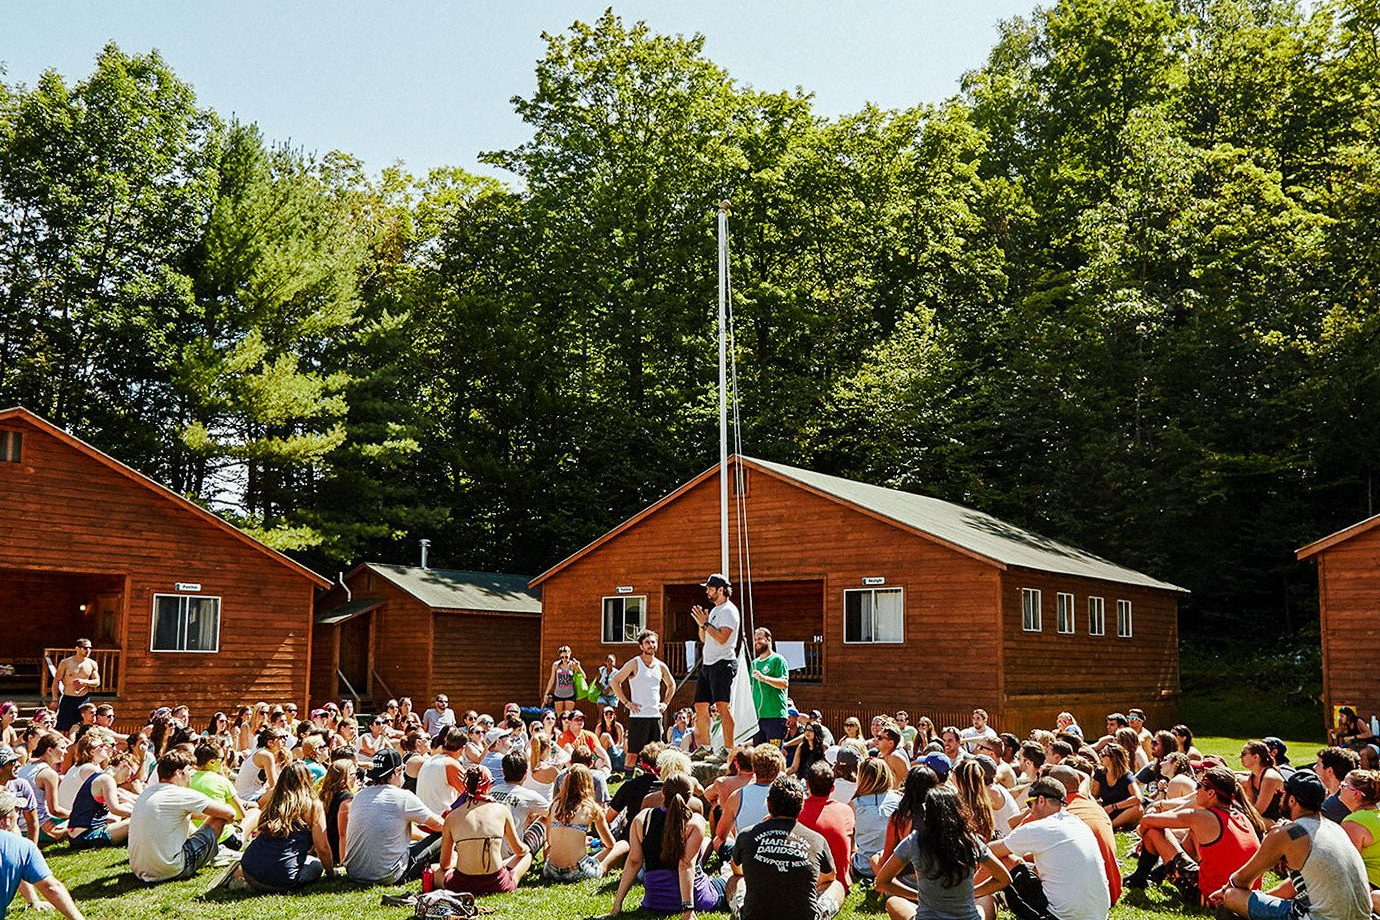 Offbeat tree outdoor grass group person crowd people plant recreation fun leisure house event fête ceremony pole several